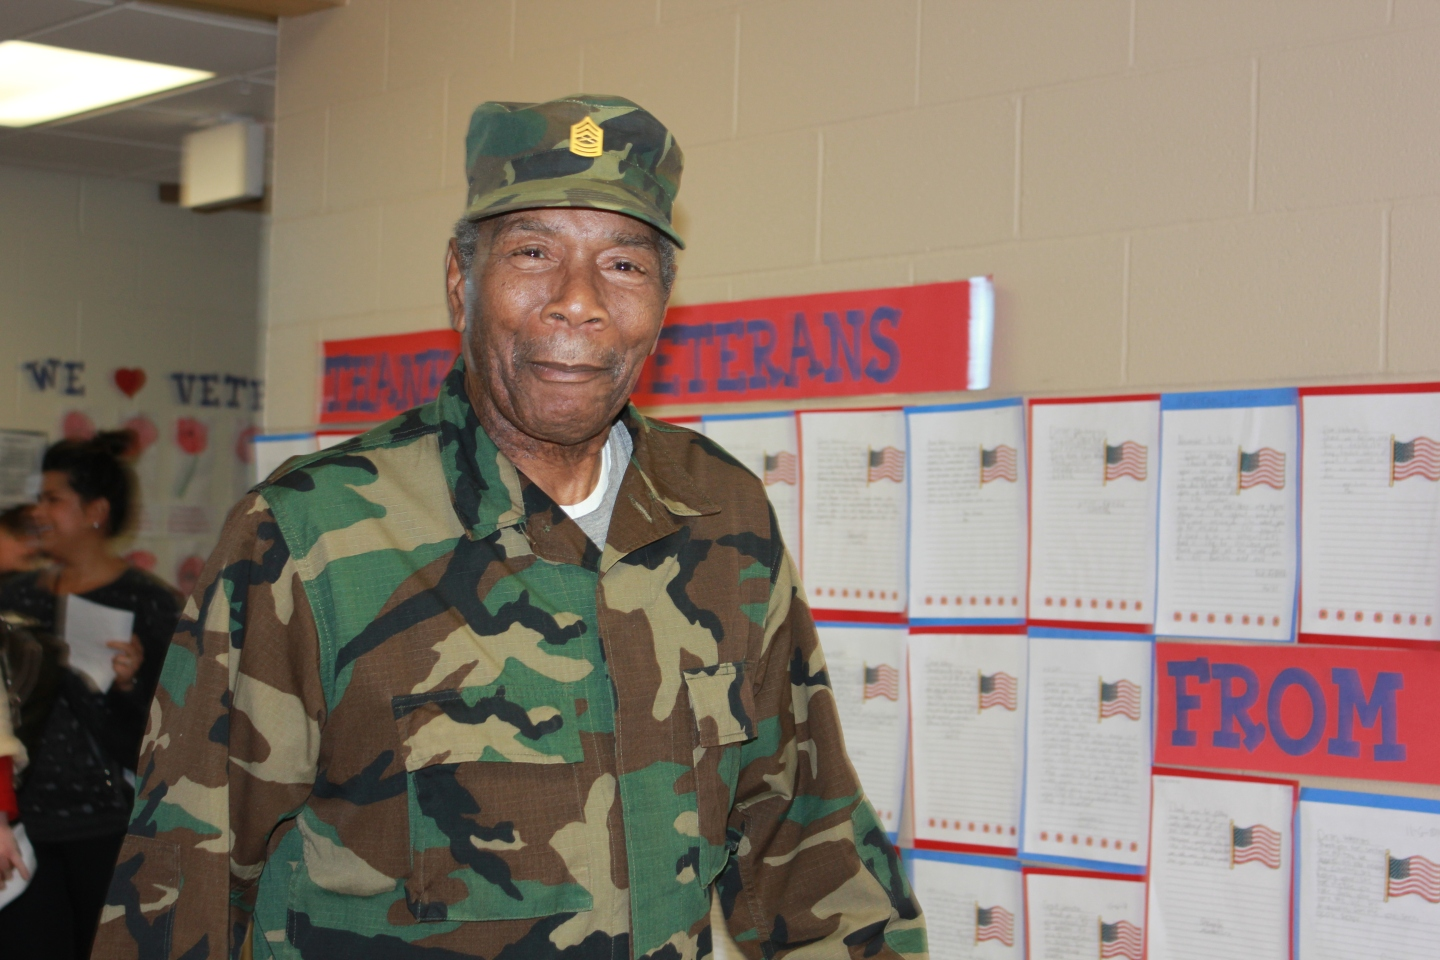 Retired Master Sgt. Lee Shepherd, a Vietnam veteran who served in the Marine Corp for 20 years celebrated Veterans Day with Creekmoor students.